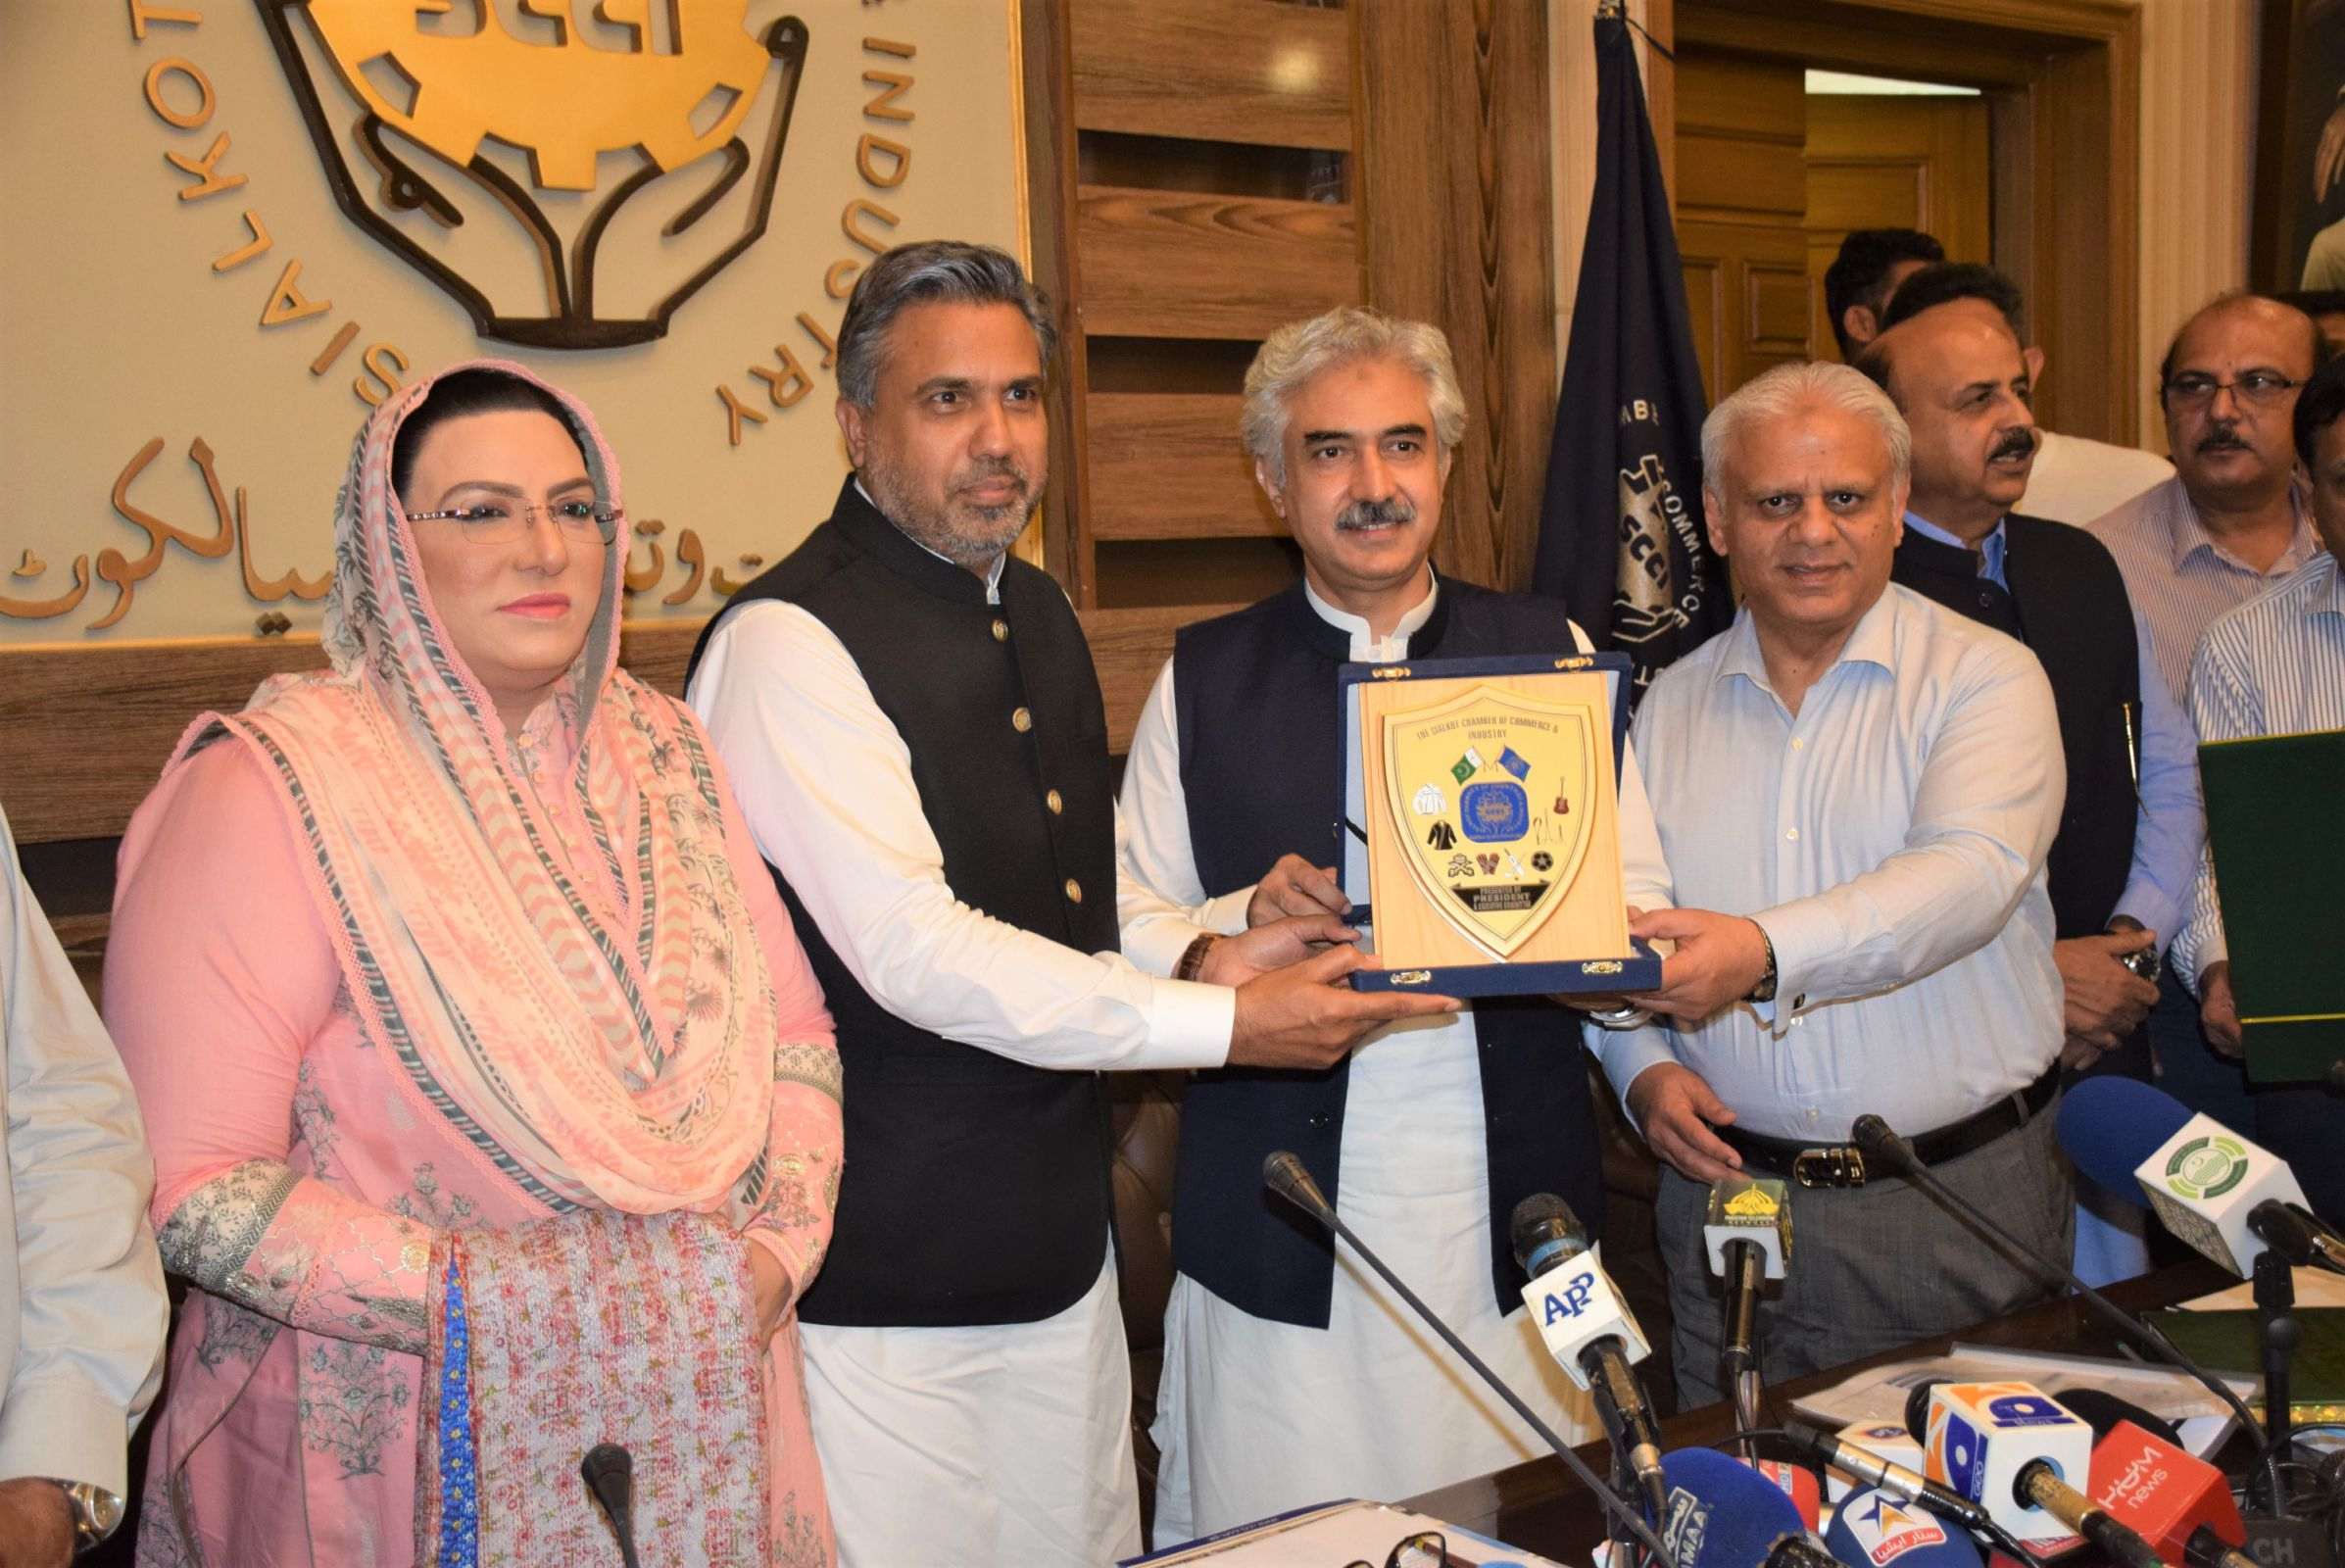 On July 15, 2021, Honorable Muhammad Aslam Iqbal, Provincial Minister of Punjab for Industries, Commerce and Investment visited SCCI to interact with business community of Sialkot.  Mr. Qaisar Iqbal Baryar, President, Mr. Khuram Aslam, Senior Vice President, Mr. Ansar Aziz Puri , Vice President SCCI welcomed the Minister and officials of Government of Punjab.  Dr. Firdous Ashiq Awaz, Special Assistant to CM on Information and Ch. Muhammad Akhlaq, Provincial Minister of Punjab for Special Education also graced the event.  Mr. Usman Dar, Special Assistant to Prime Minister on Youth Affairs also joined the meeting through zoom.